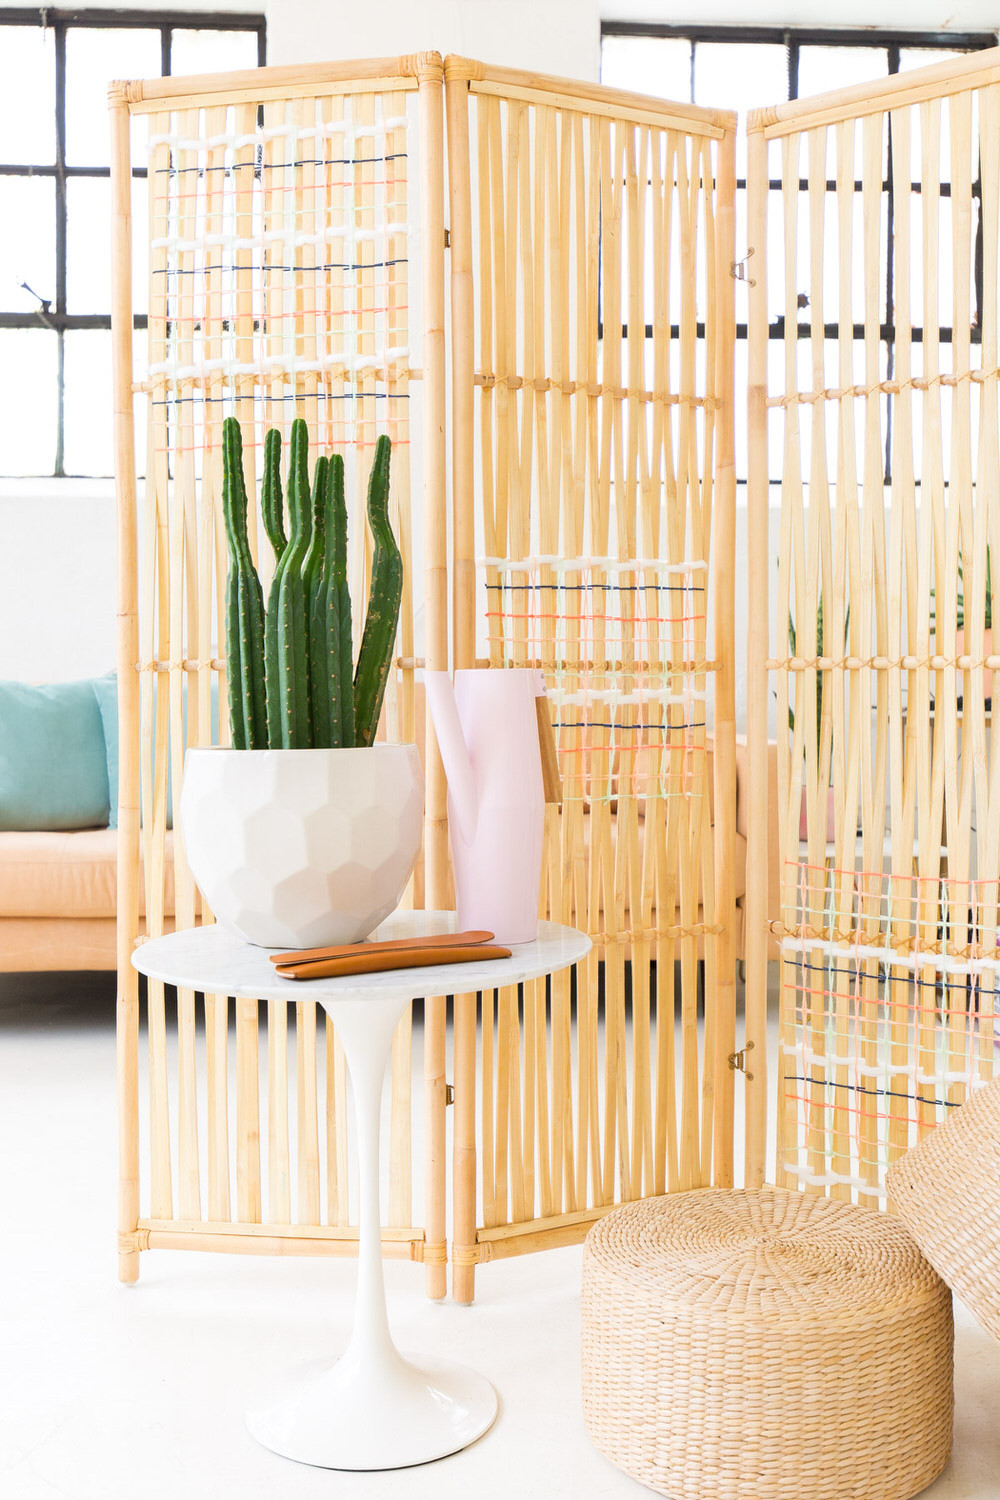 Best ideas about DIY Room Partitions . Save or Pin Clever DIY Room Divider Ideas Now.